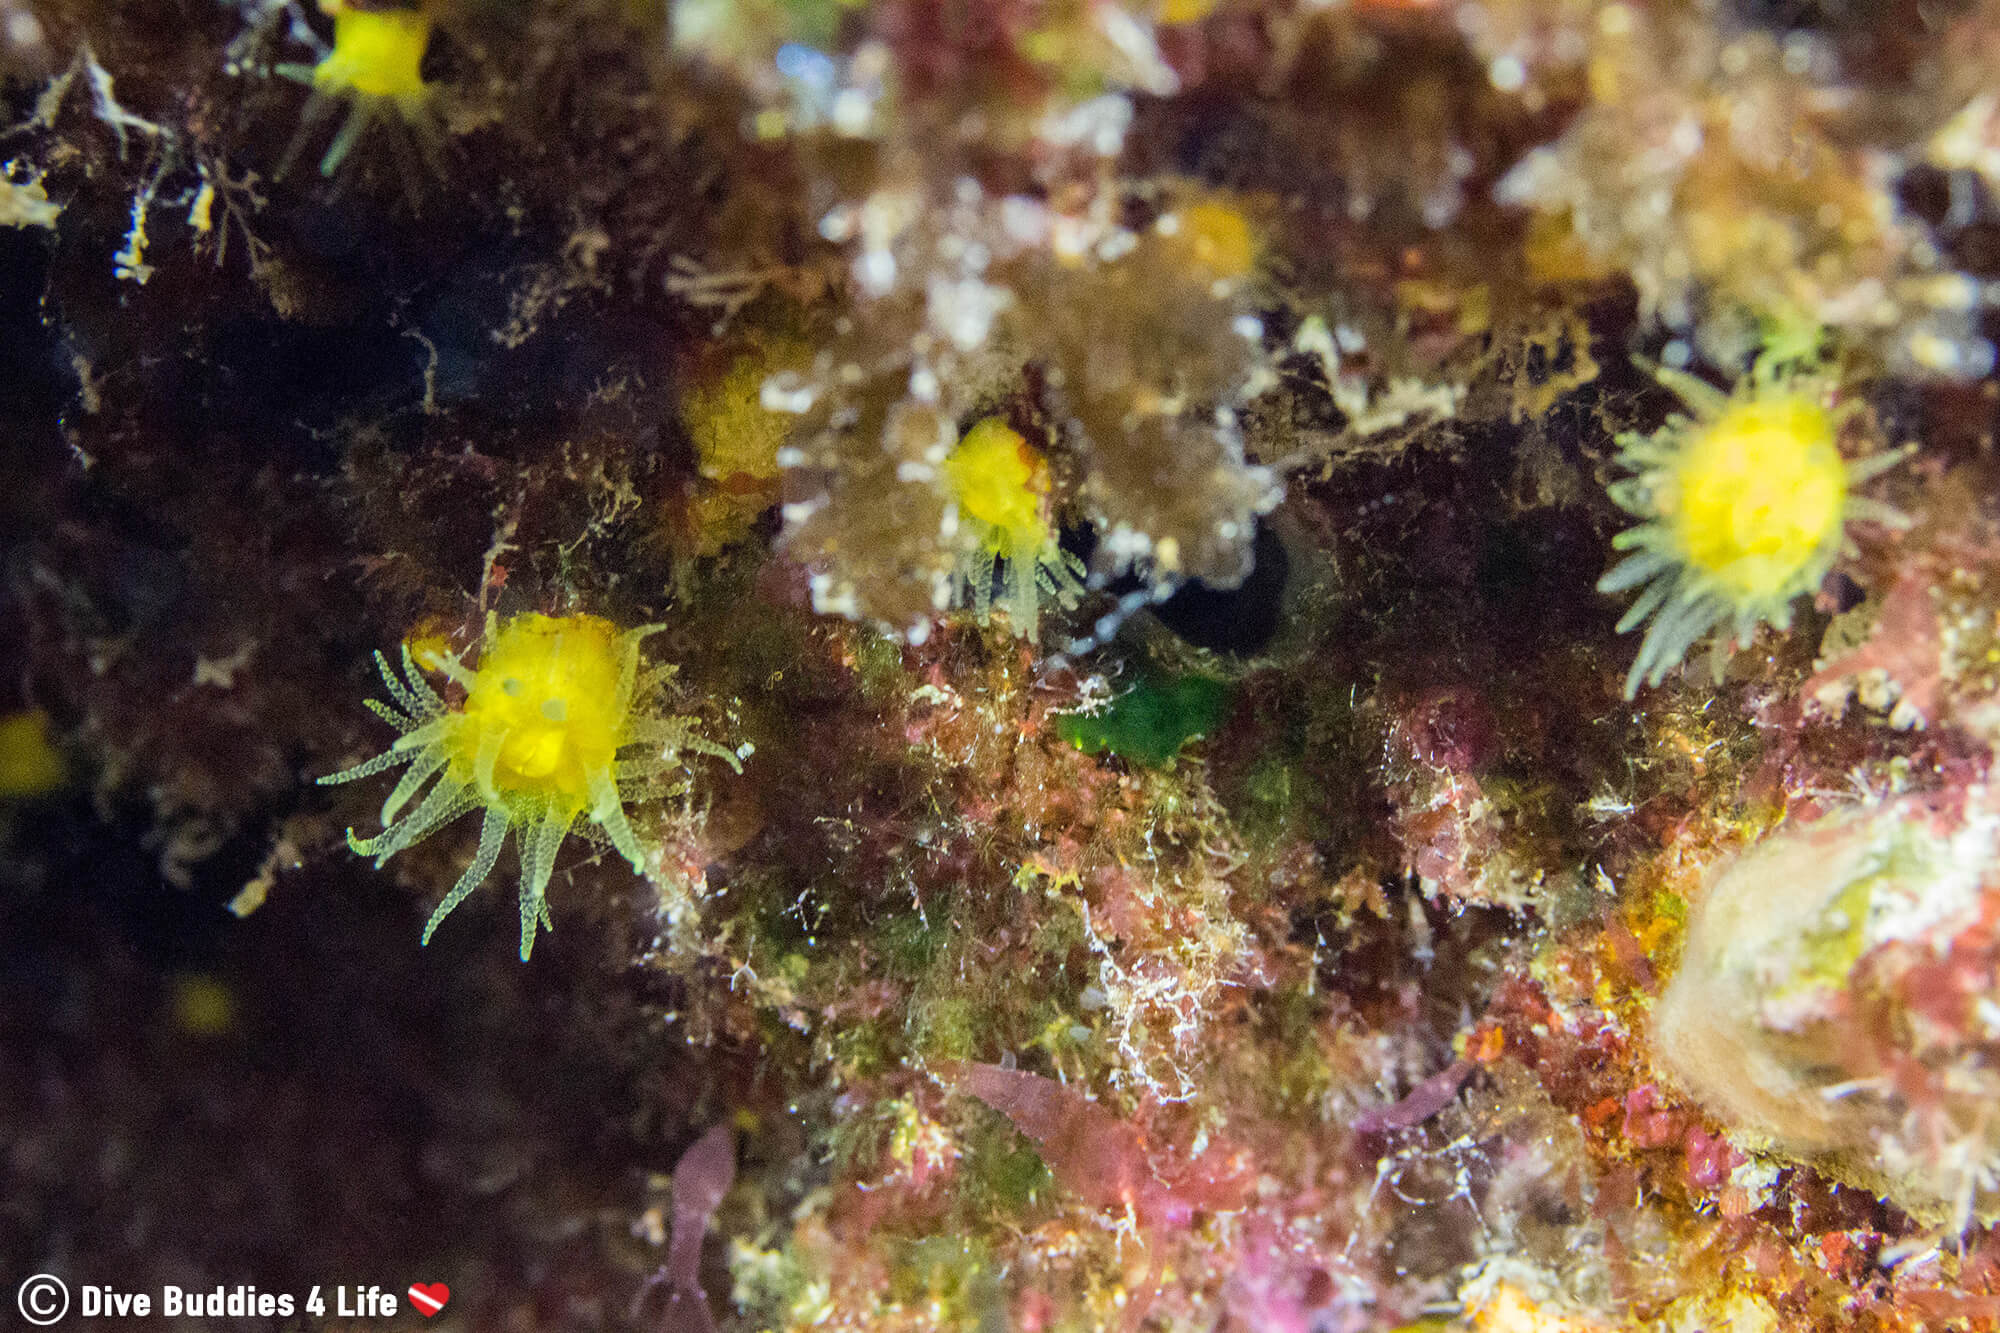 Yellow Polyps On A Rock Crevasse On Zakynthos Island In Greece, Europe